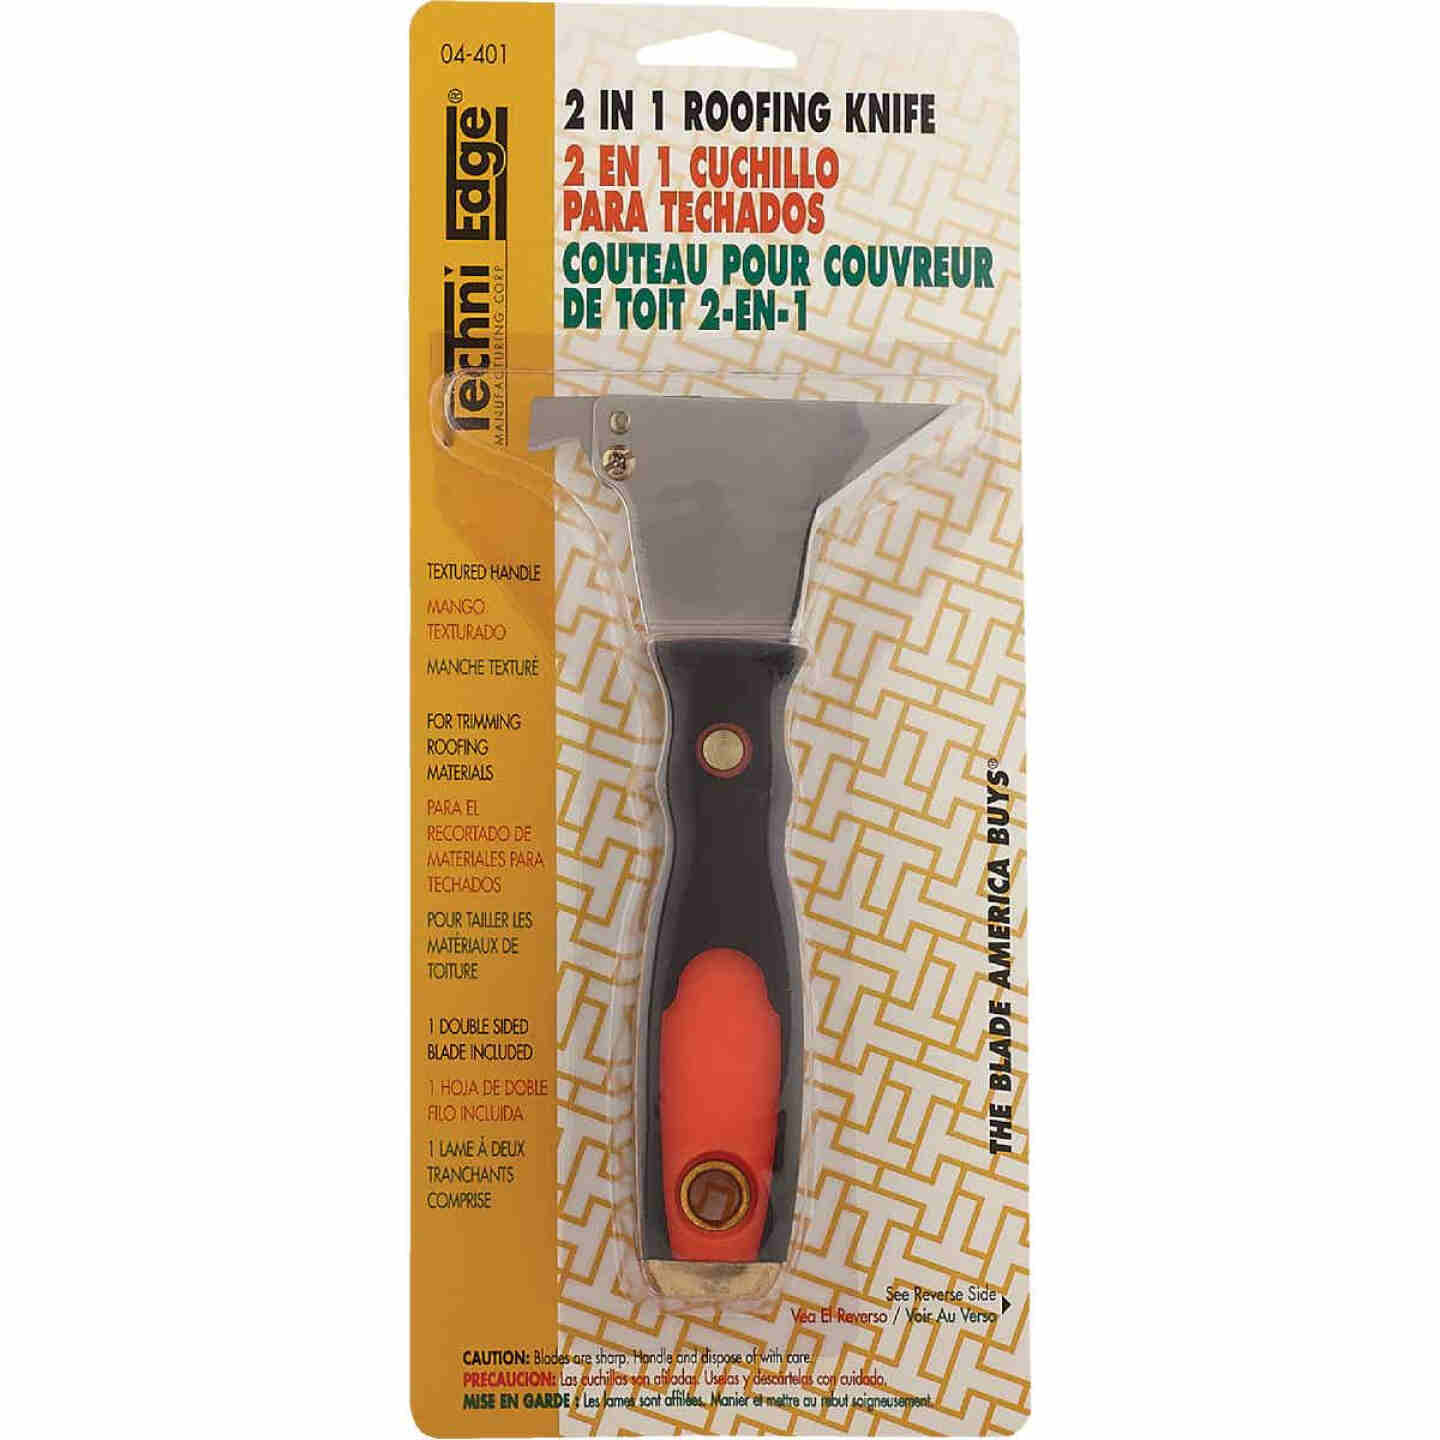 Techni Edge 2-in-1 Roofing Knife Image 2